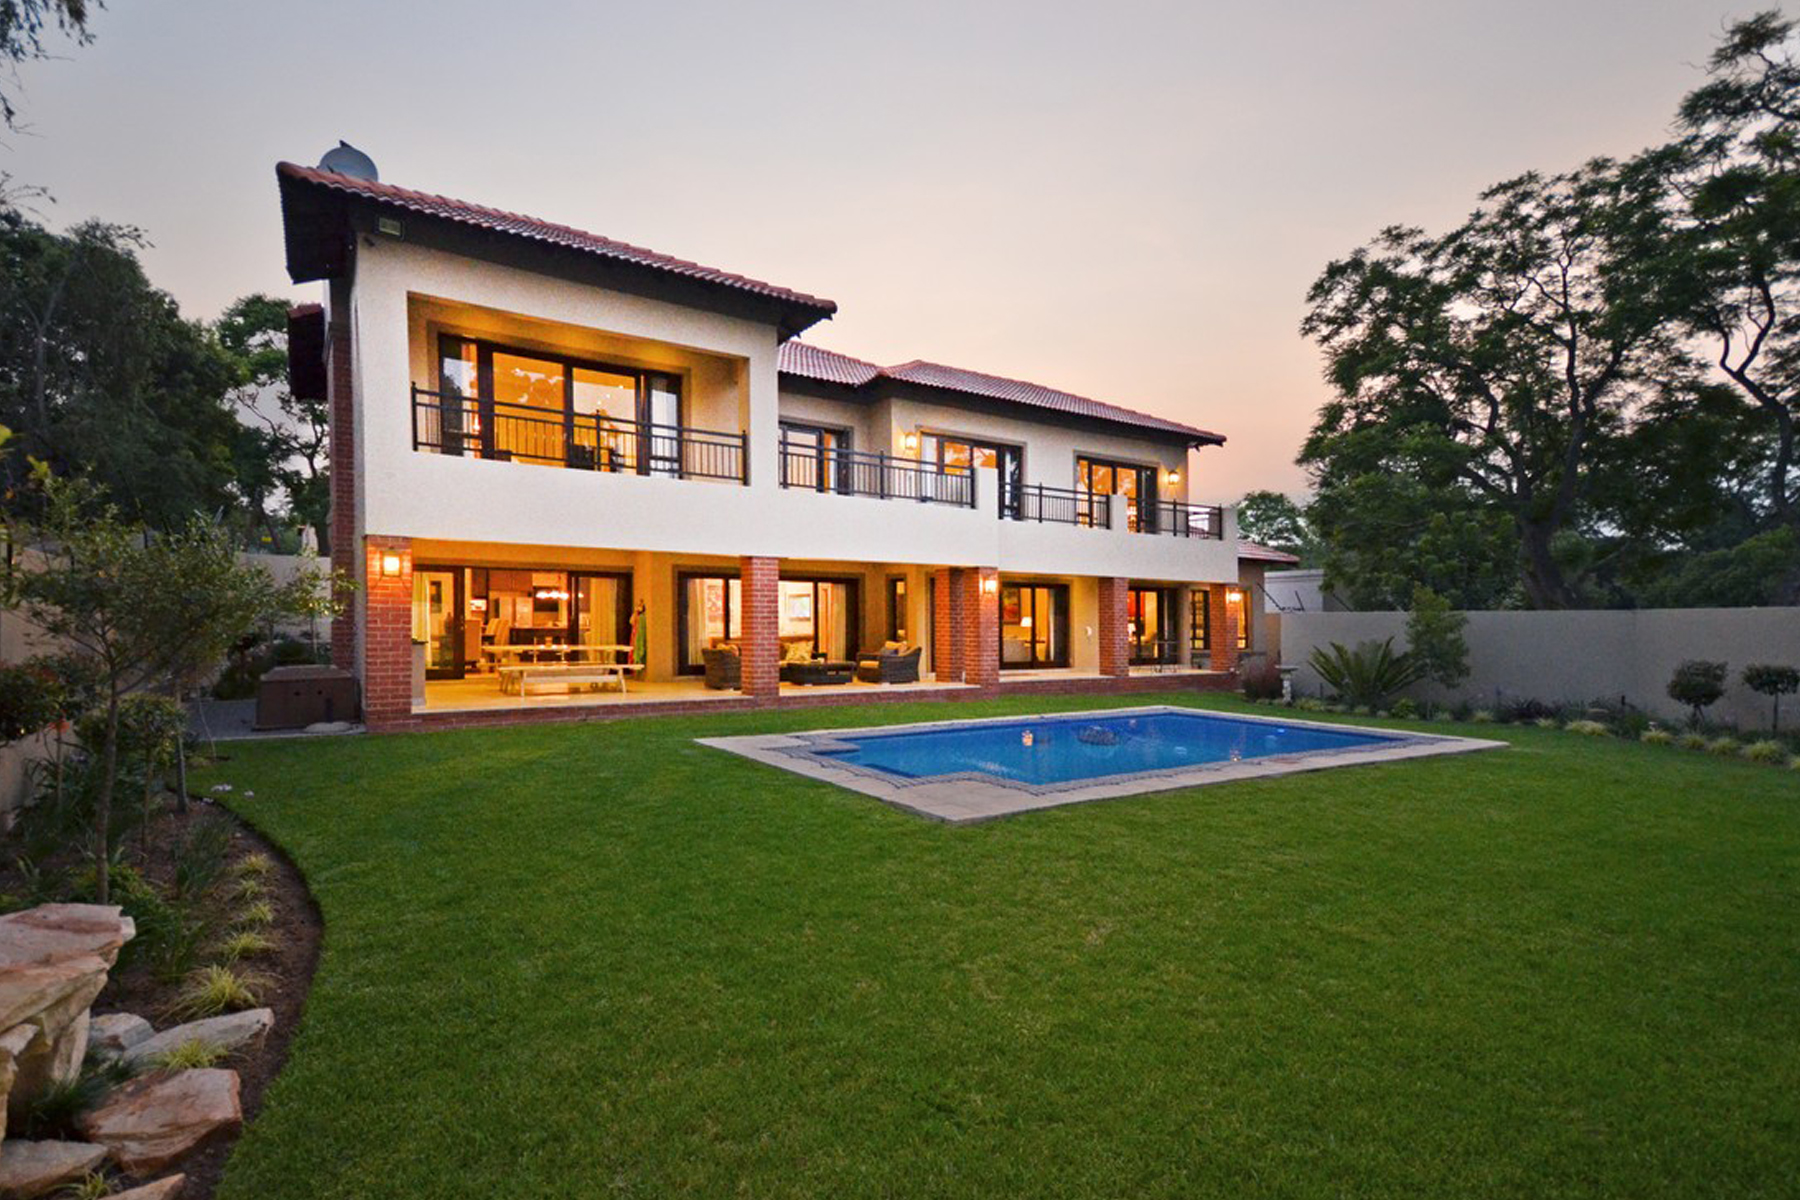 Single Family Home for Sale at A house in Bryanston Johannesburg, Gauteng, South Africa